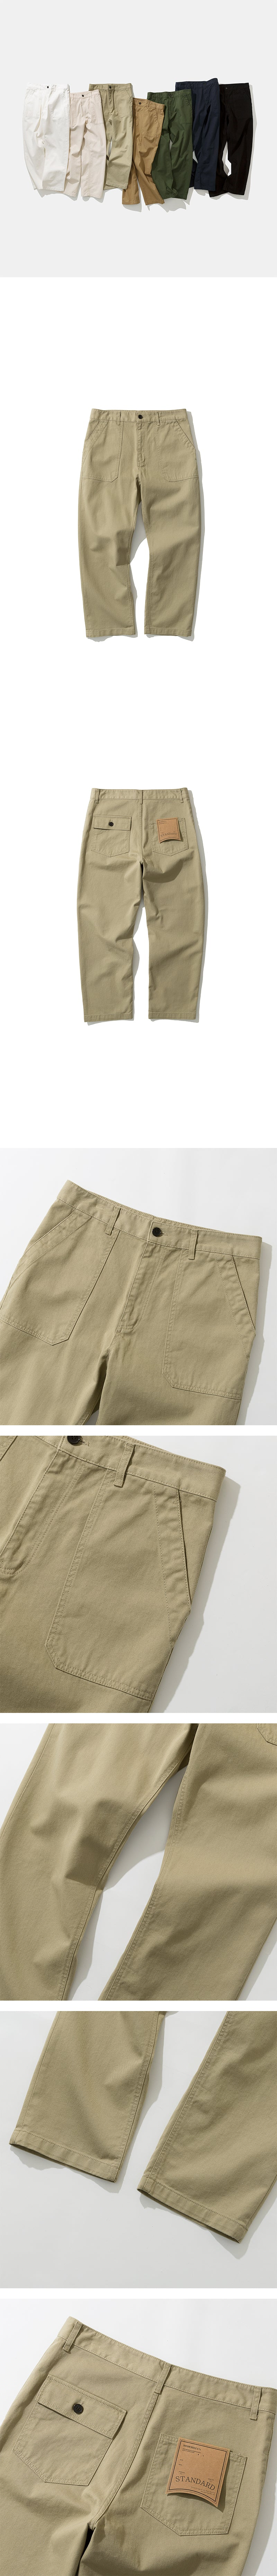 Fatigue Pants - Beige